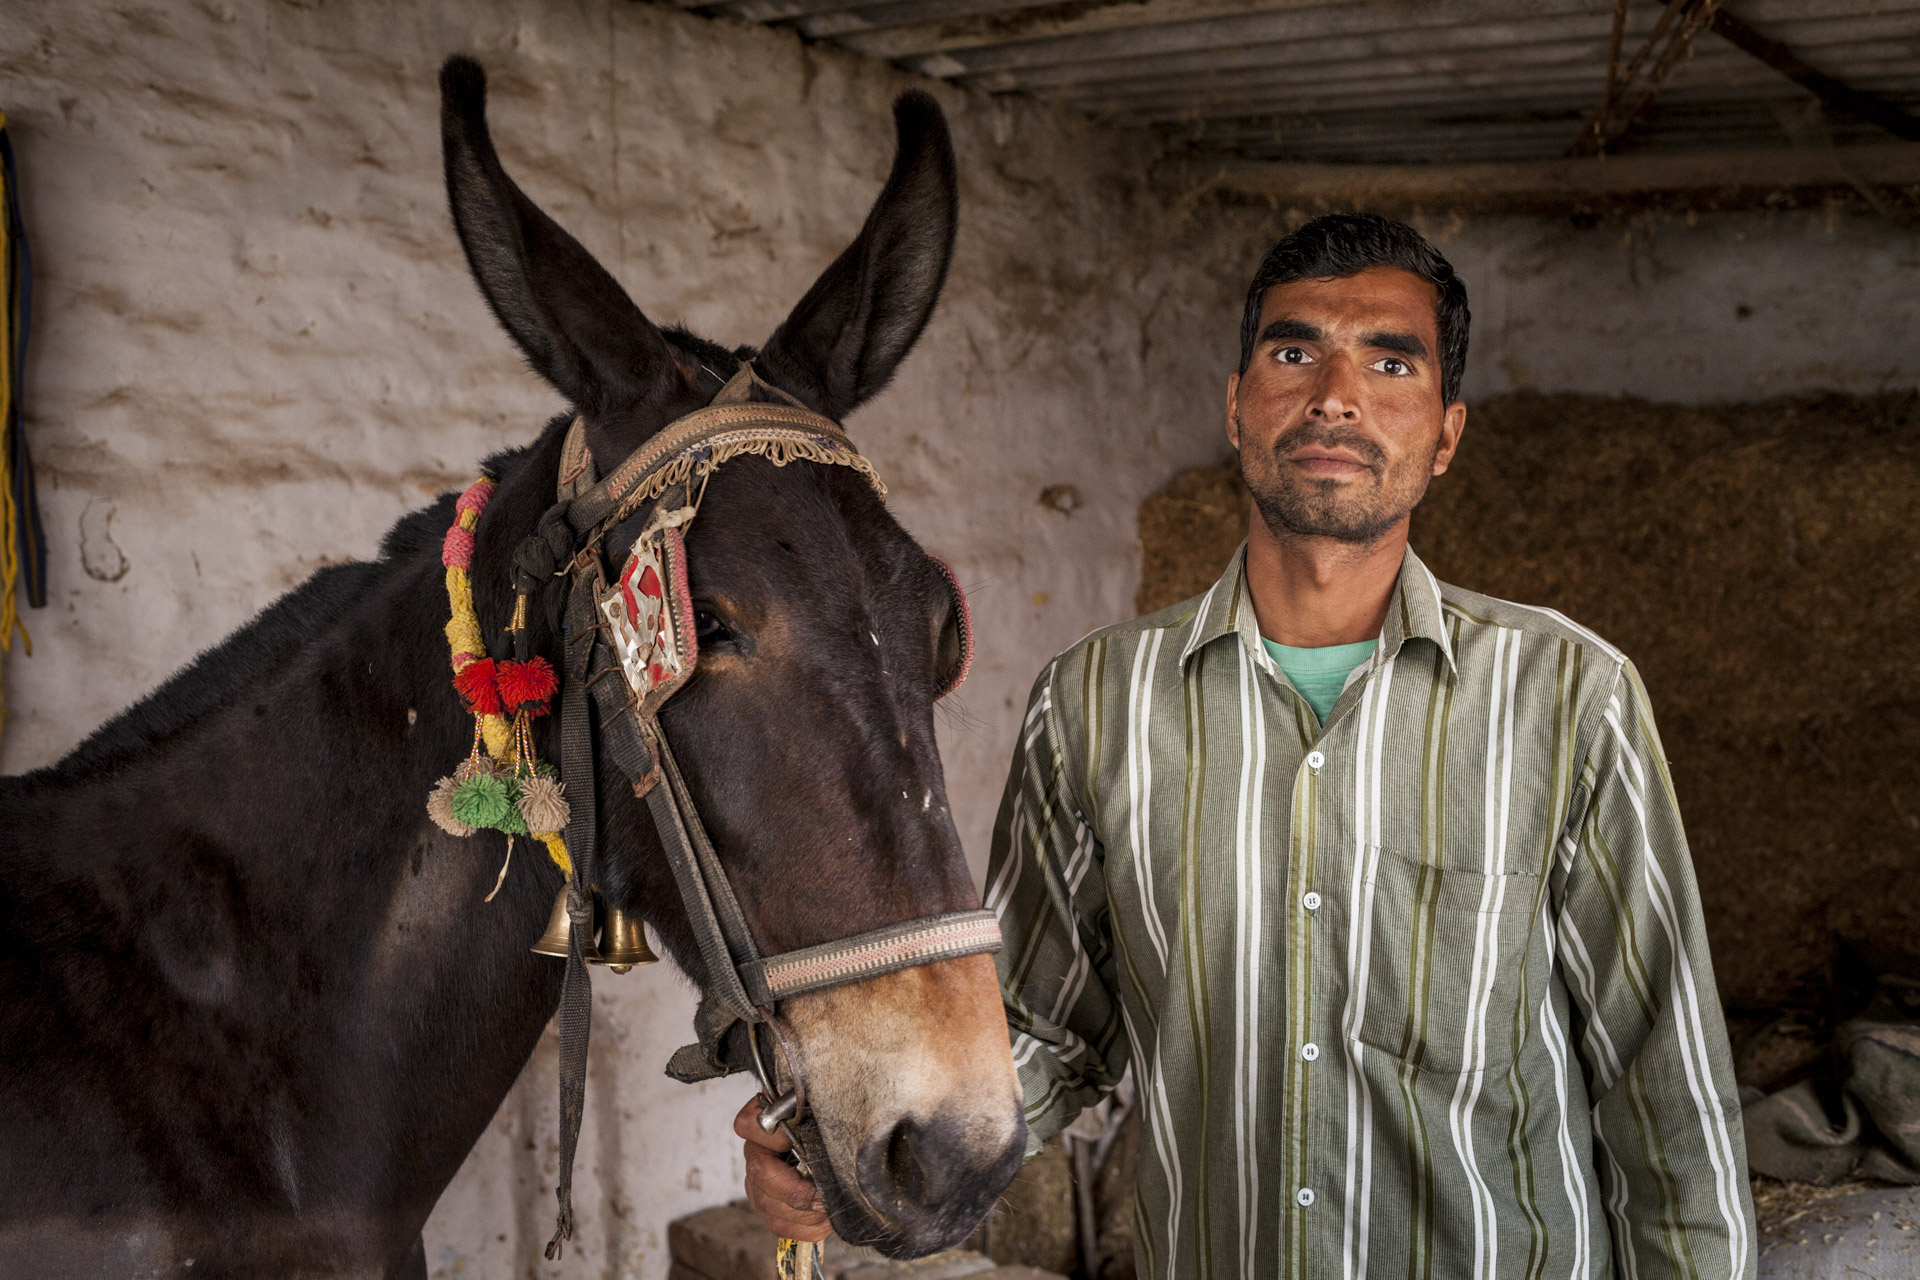 Khesikala village 1 km from Faridabad KSN brick kiln near Delhi, India. The mule owners who work at the kiln are settled here in the village. The mules enjoy good stables and food here.Vedpal (30) with his 2 year old mule at his stable in the village.Modern India is built on the backs of donkeys and mules. © Crispin Hughes